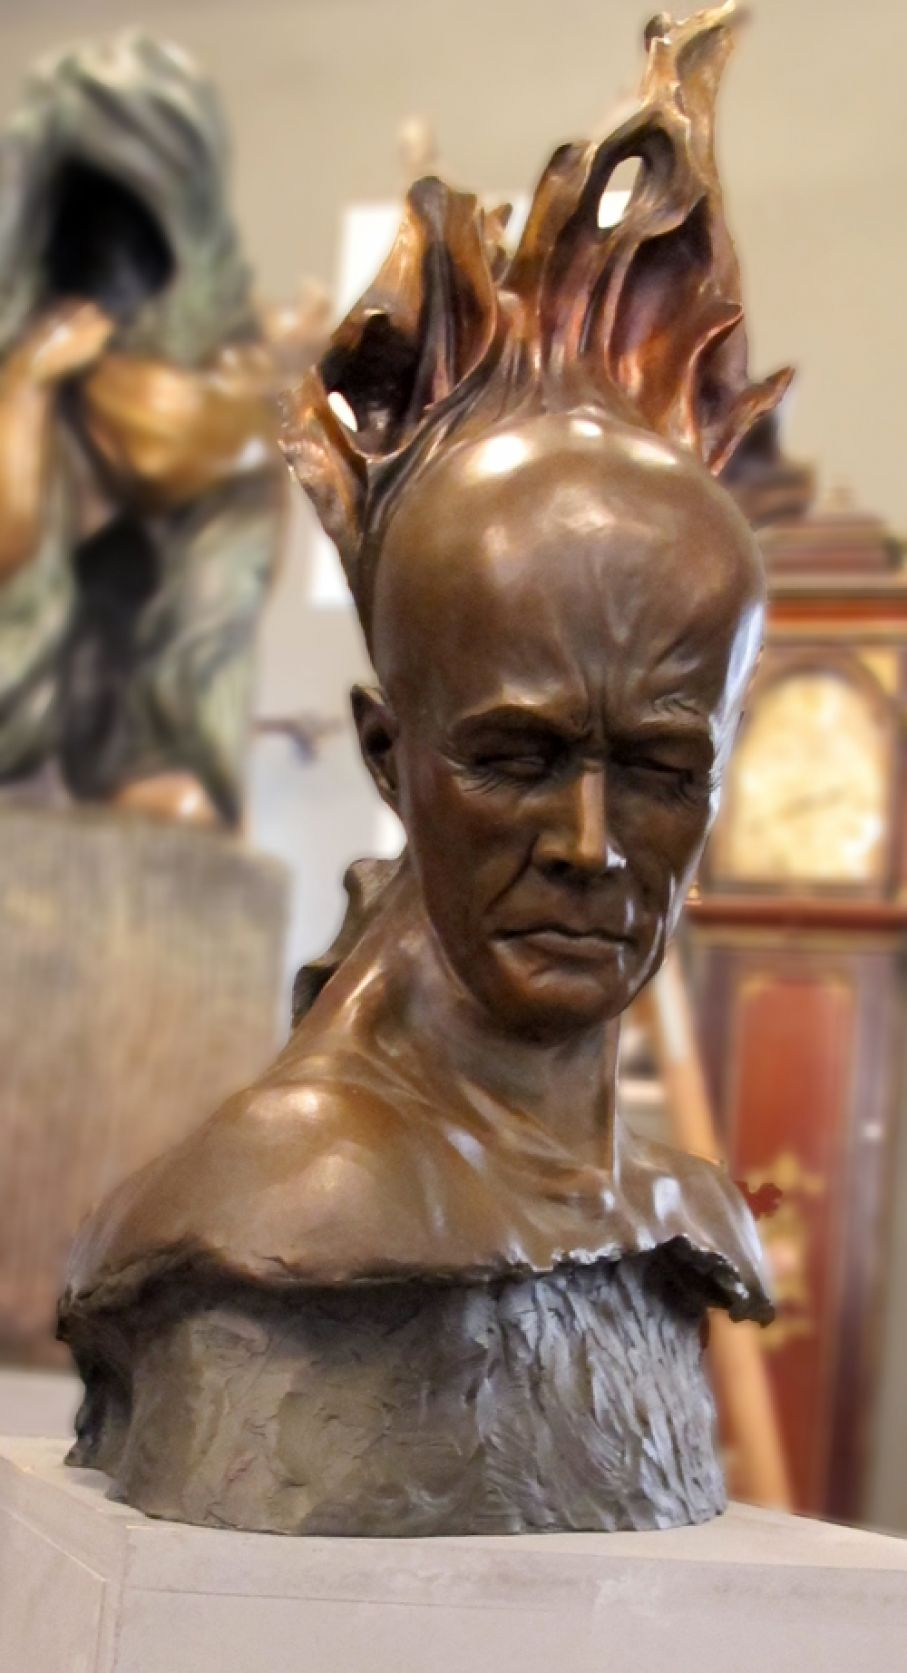 Original bronze sculpture of  Edward Fleming with patina.  Dimensions: 59 X 40 X 22 cm (without its base).